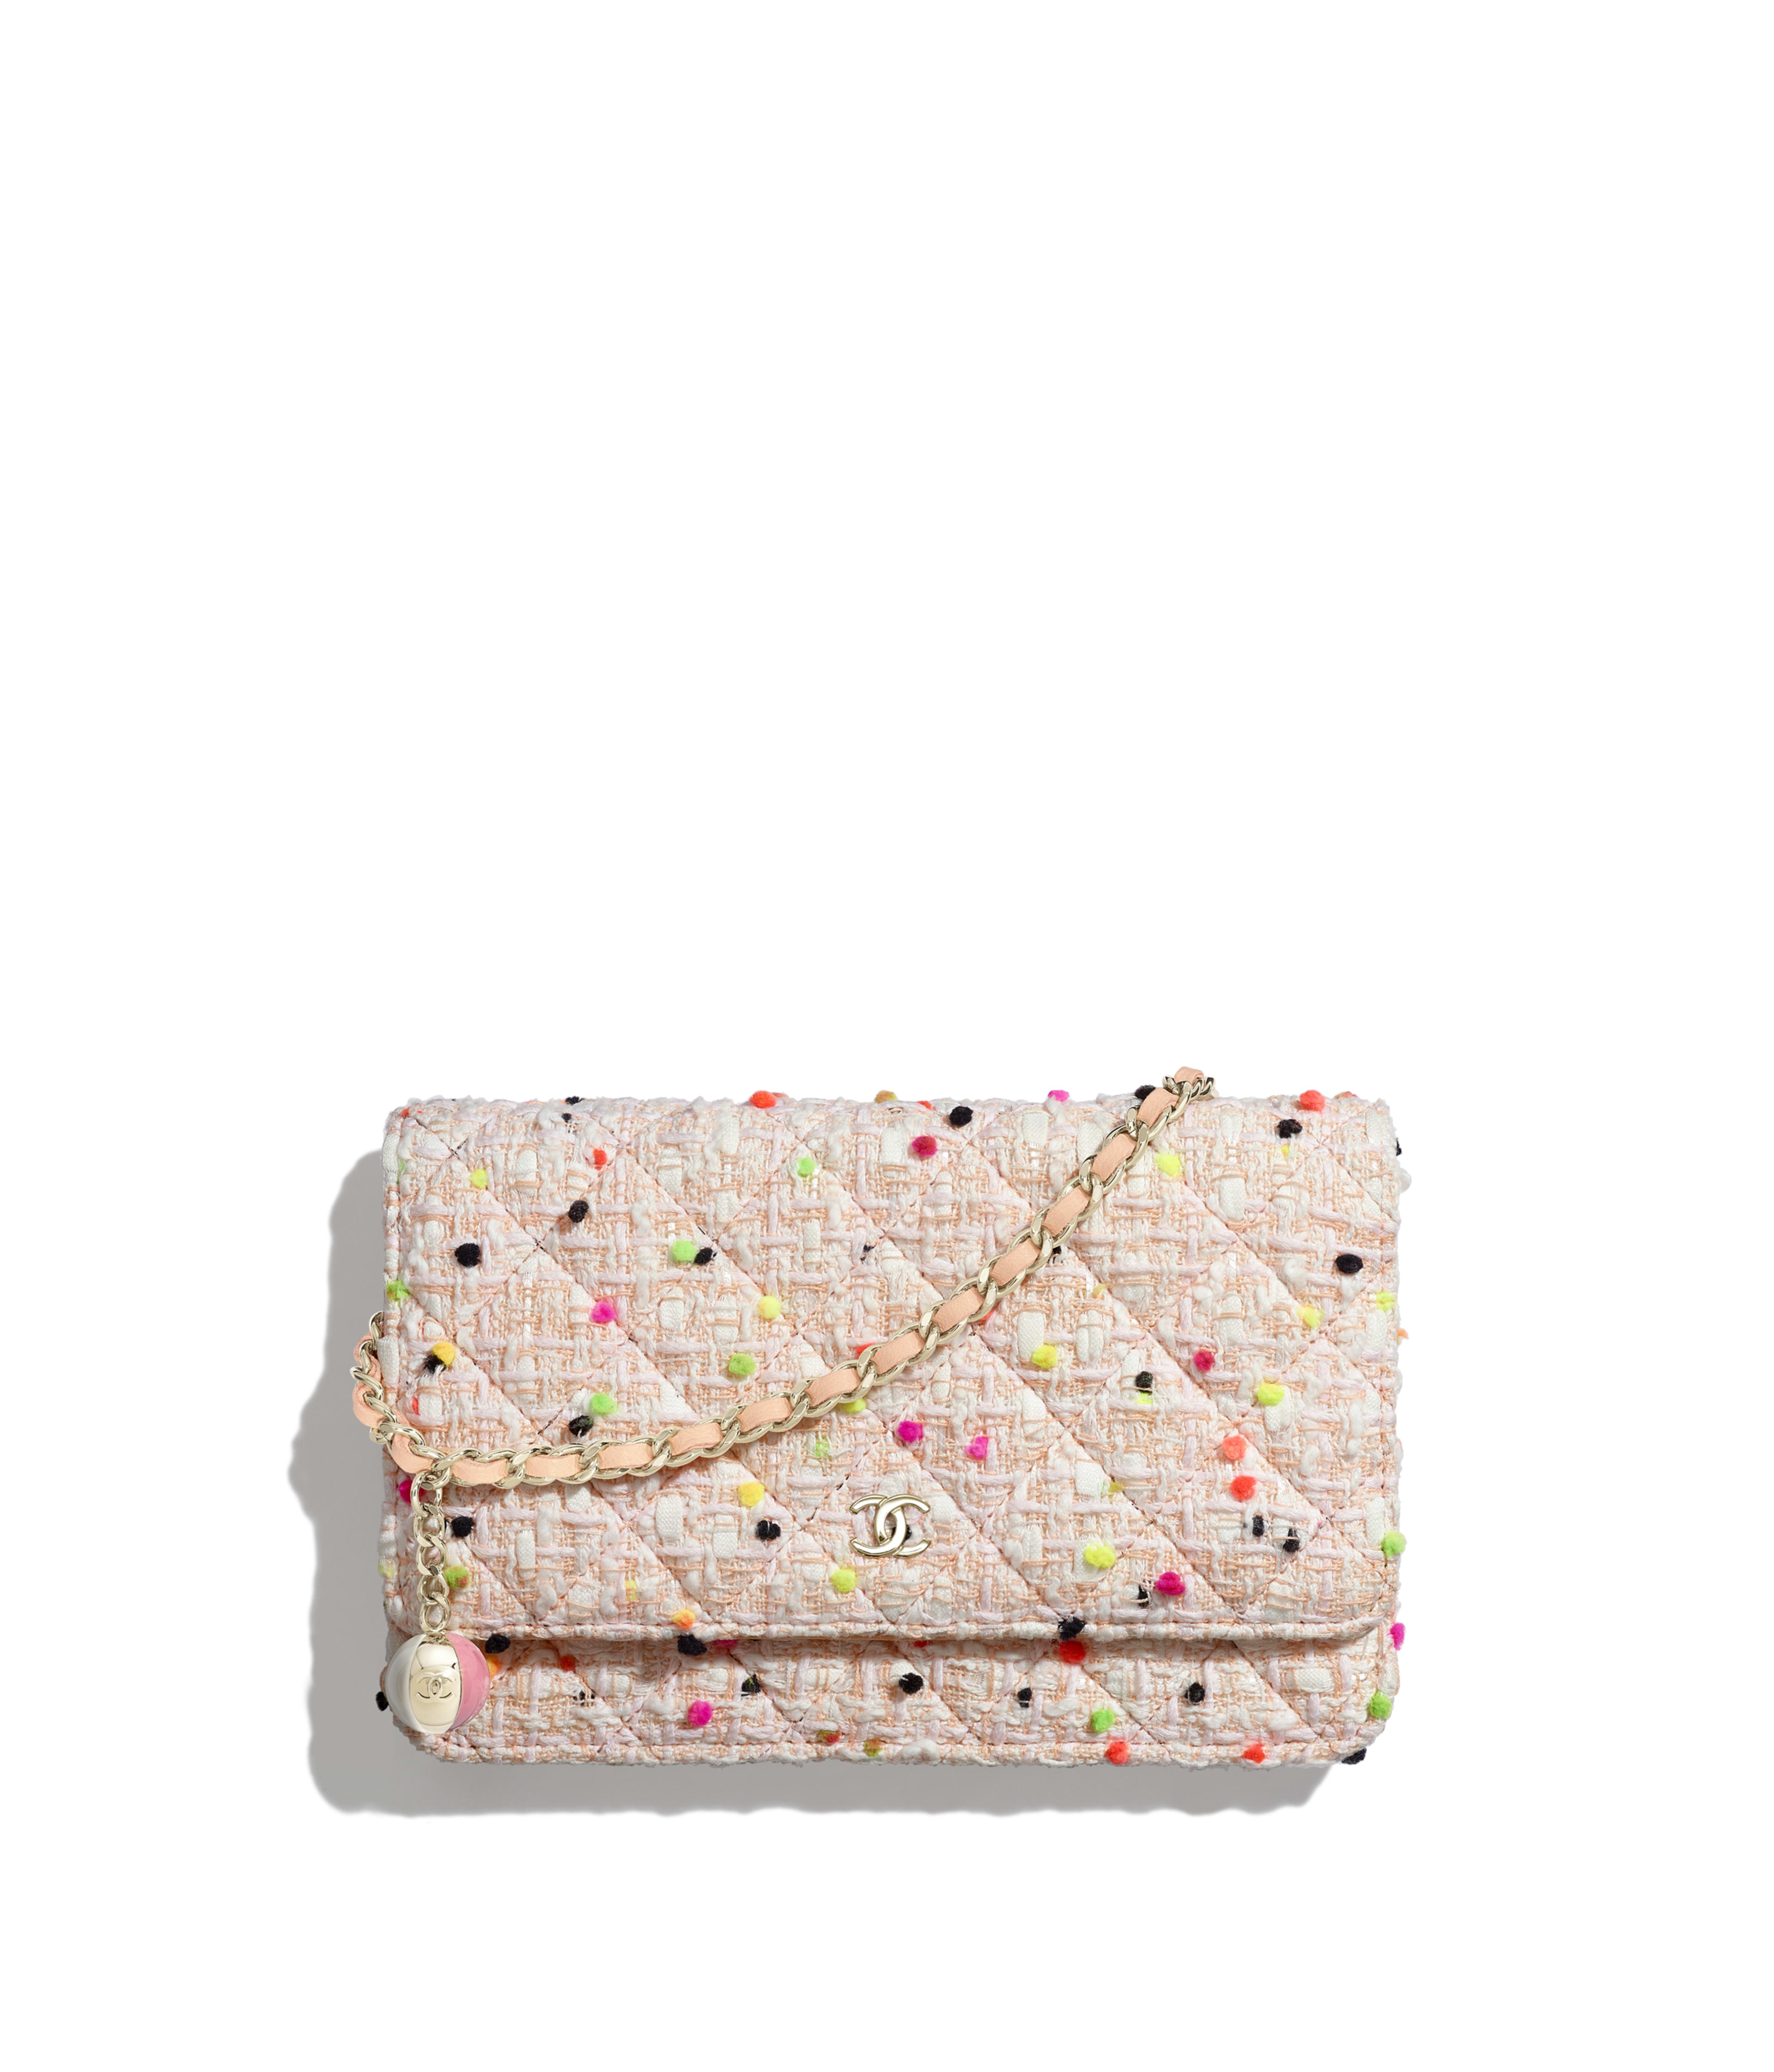 8726d729e067 Classic Wallet on Chain Cotton Tweed & Gold-Tone Metal, Coral & White Ref.  A33814B00533MG146